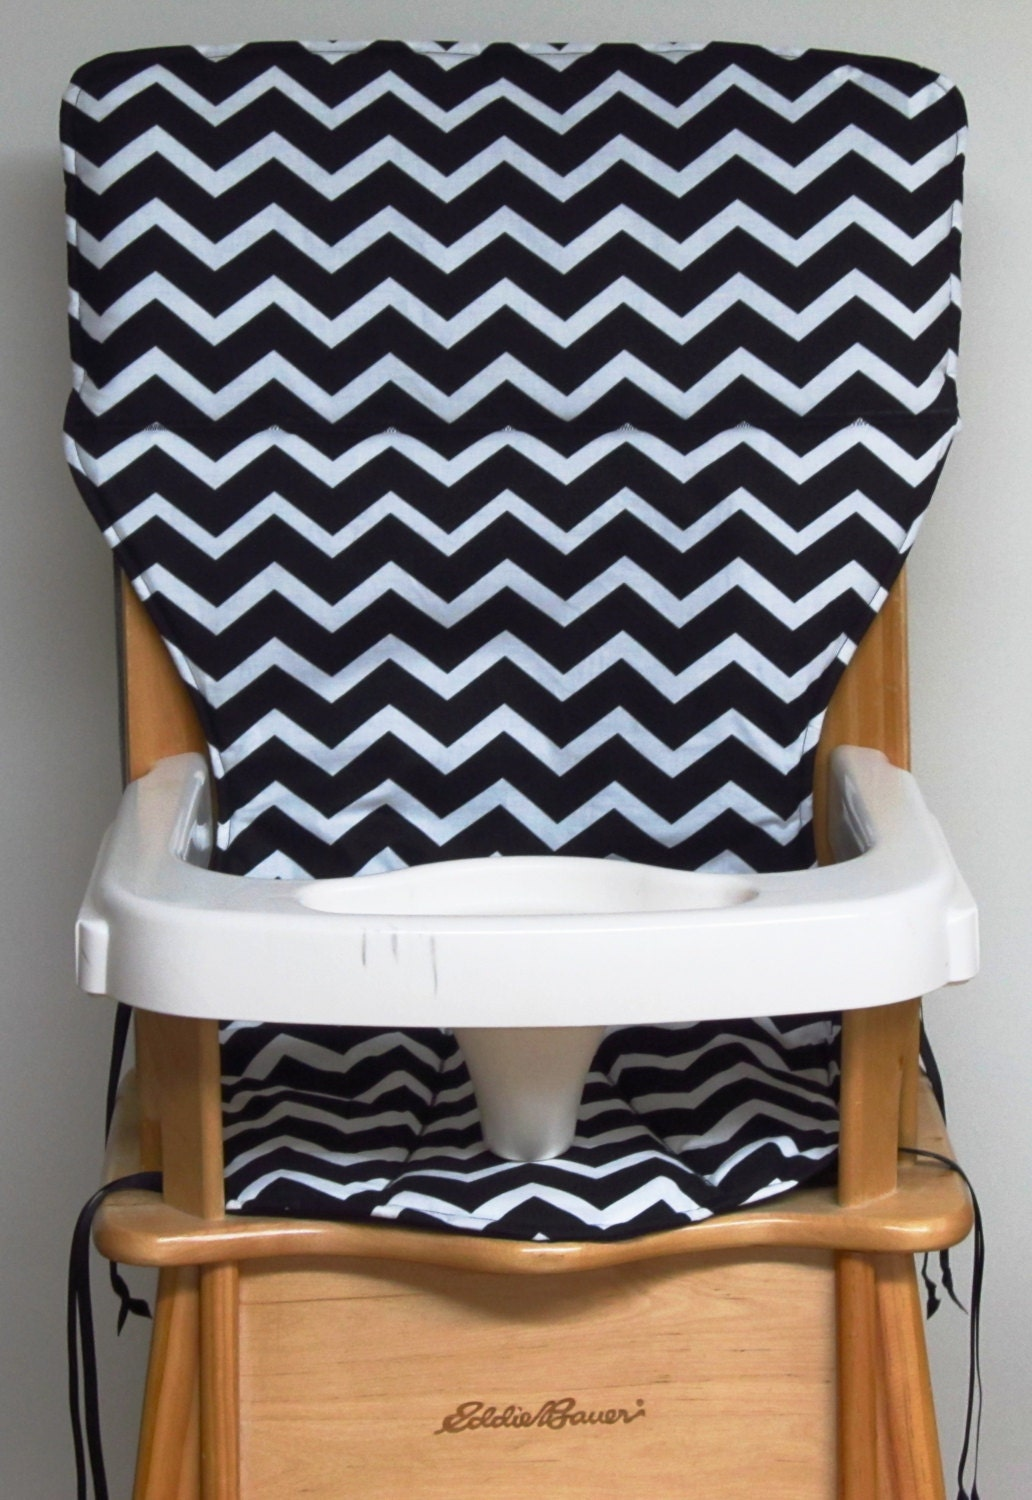 eddie bauer wooden high chair pad replacement cover zigzag